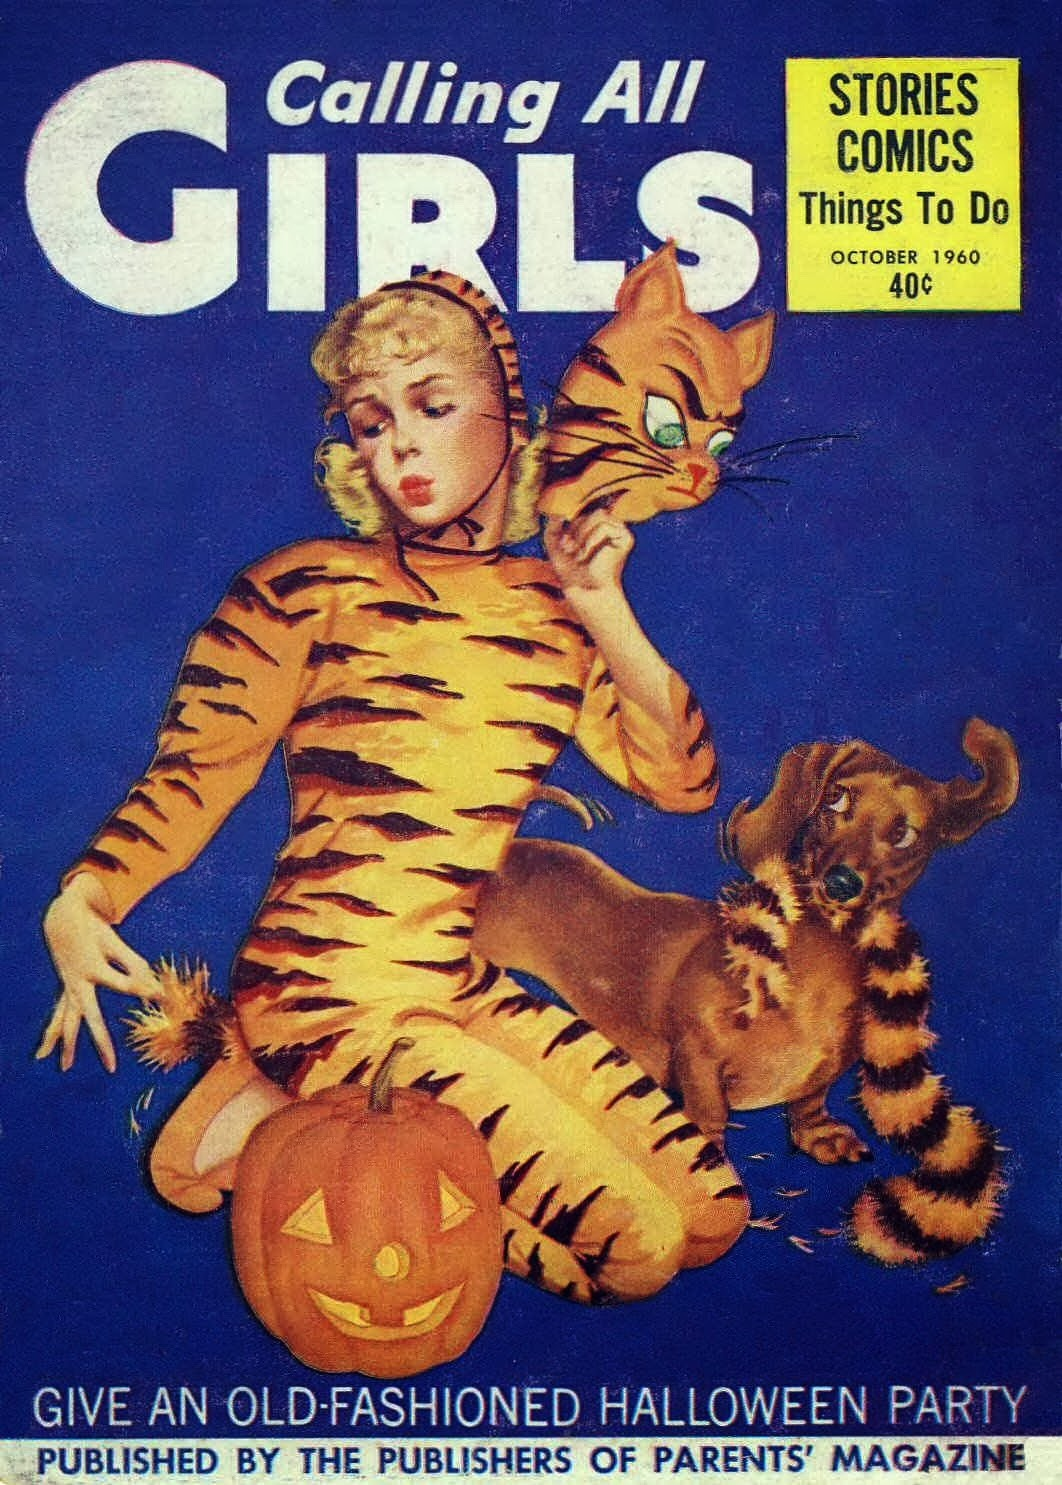 Calling all Girls - published October 1960